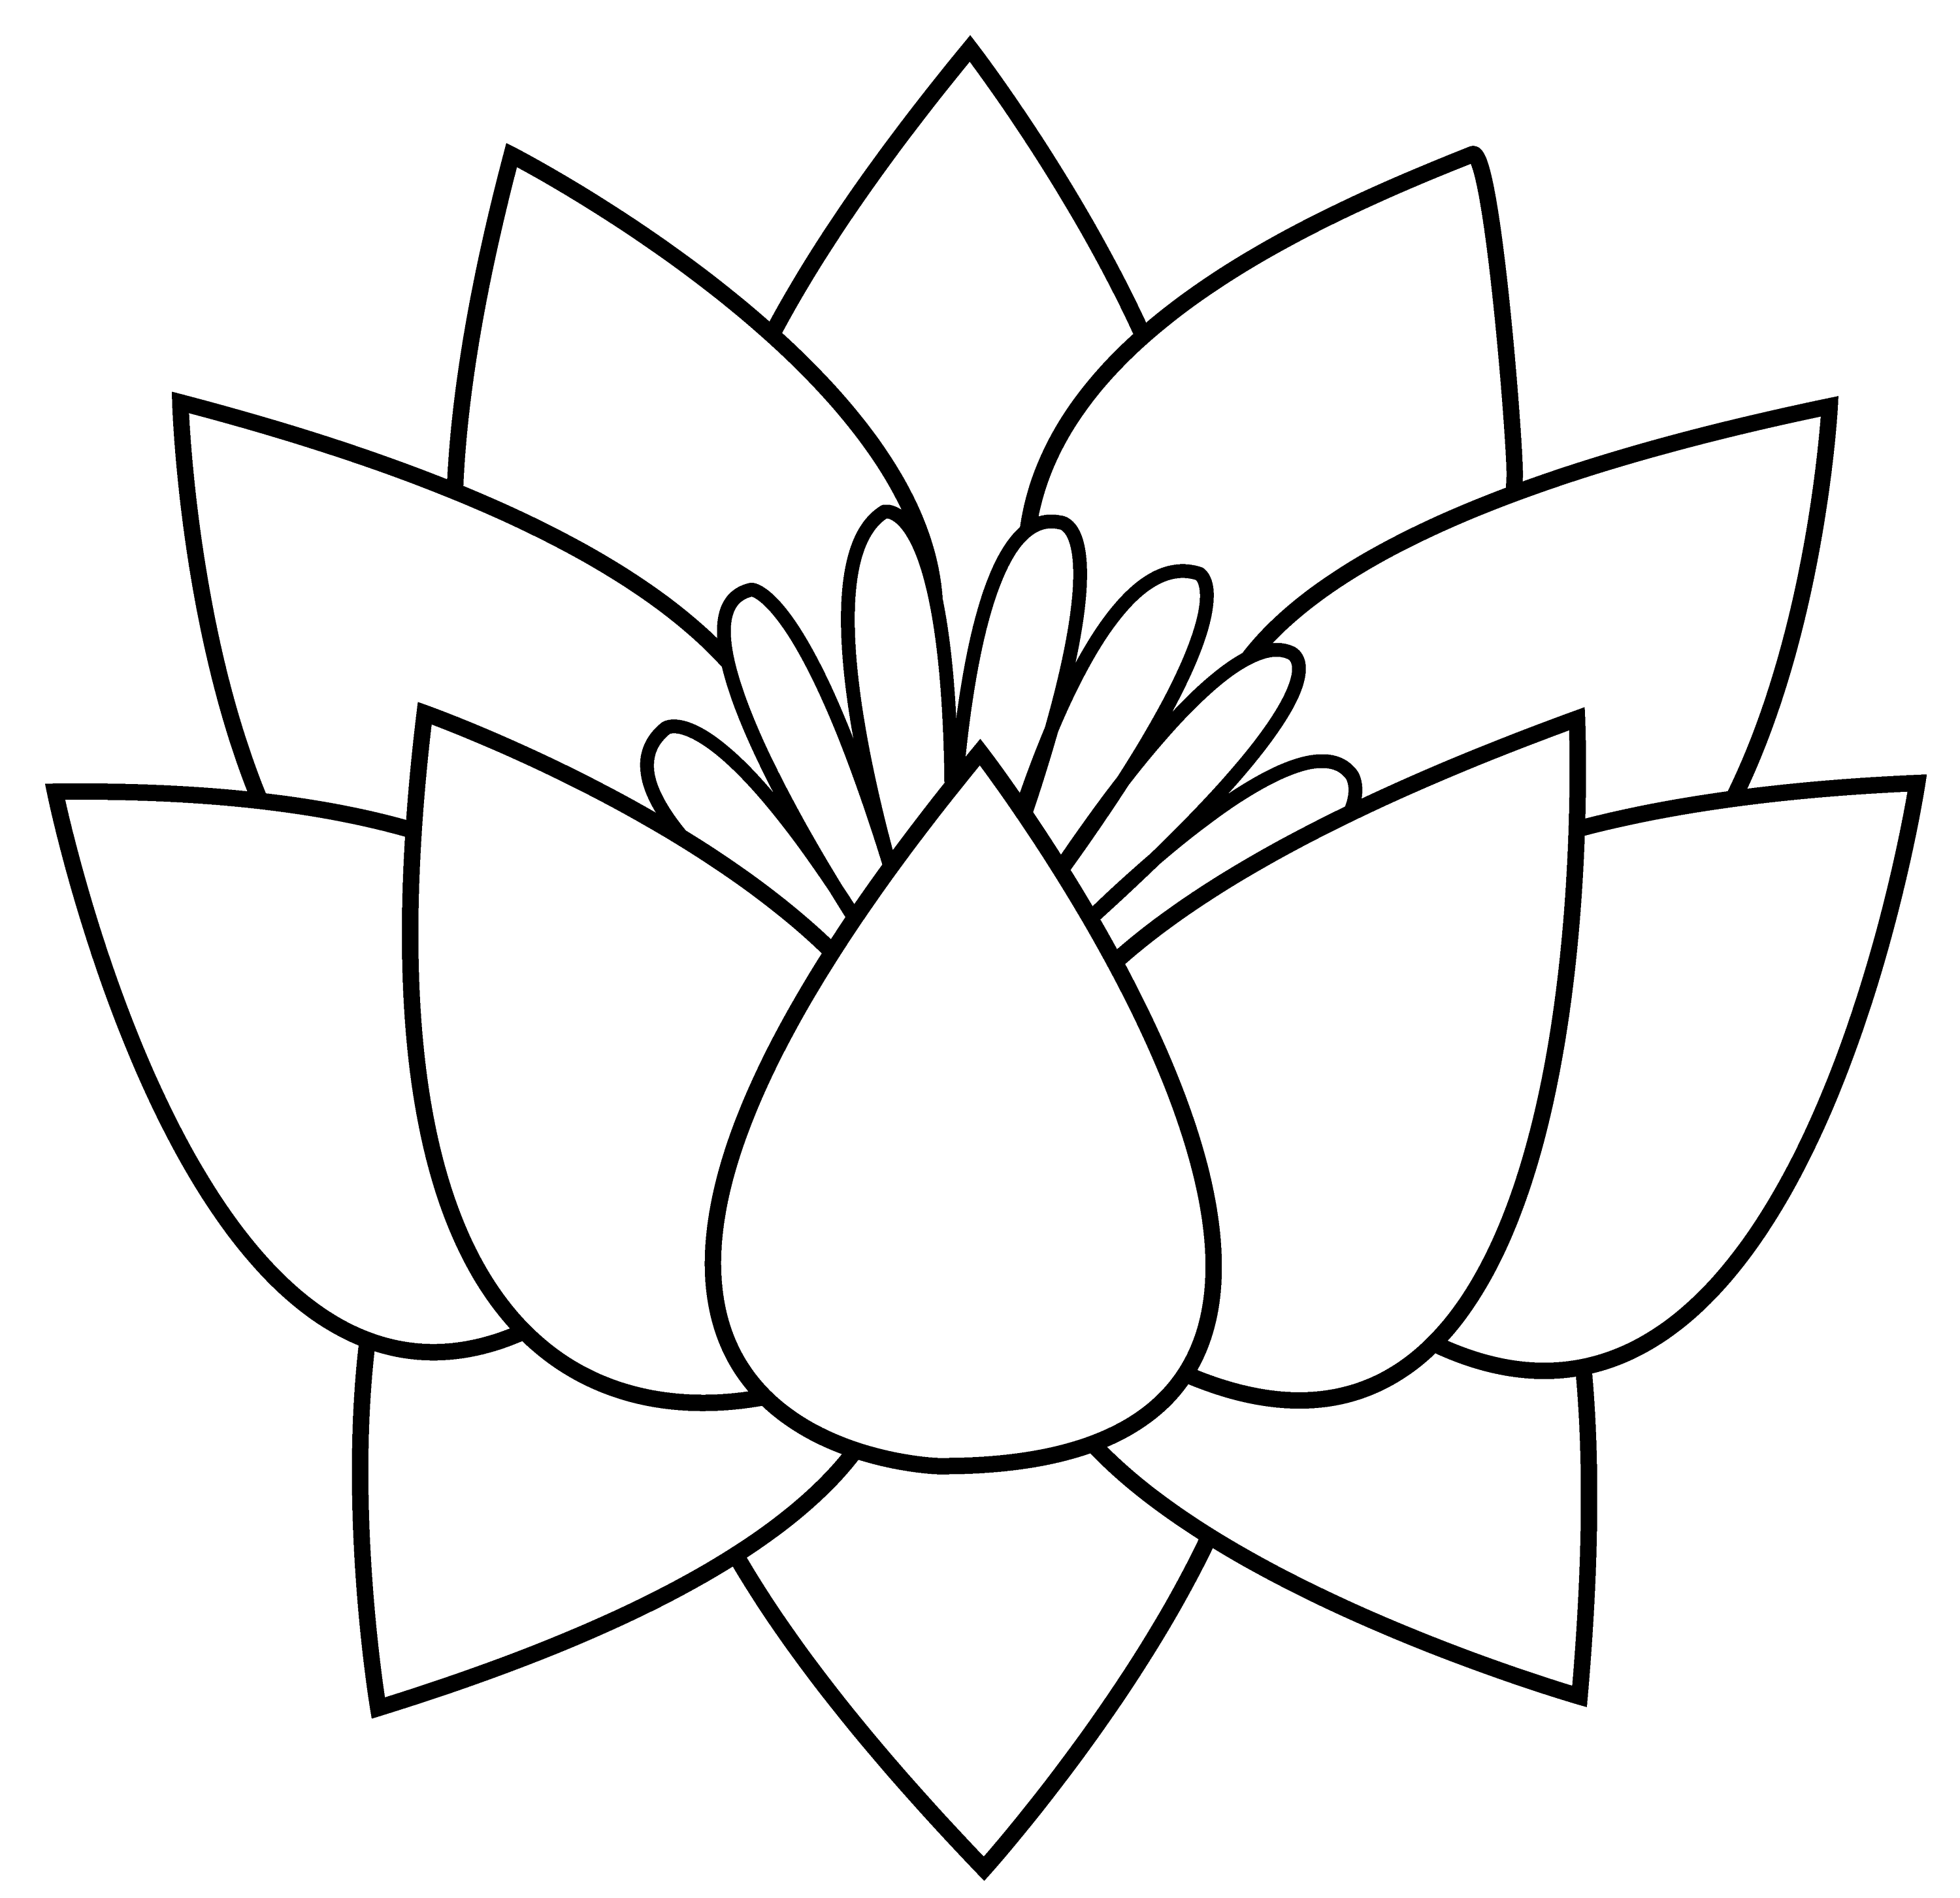 lotus flower line drawing - photo #17